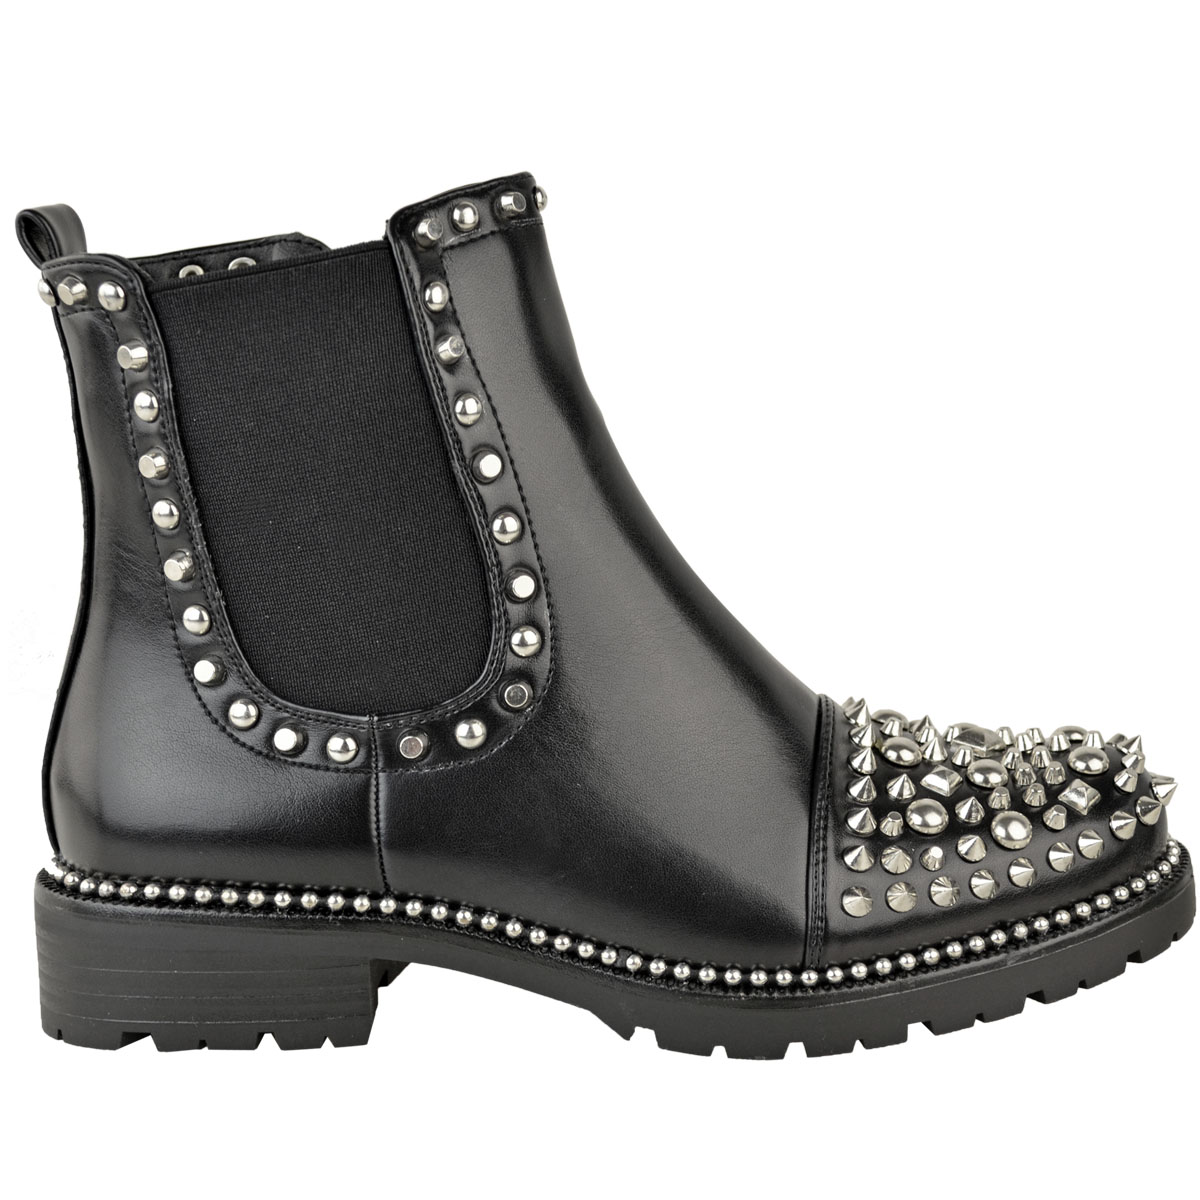 New-Womens-Ladies-Studded-Goth-Zip-Ankle-Boots-Gusset-Chelsea-Chunky-Punk-Size Indexbild 7